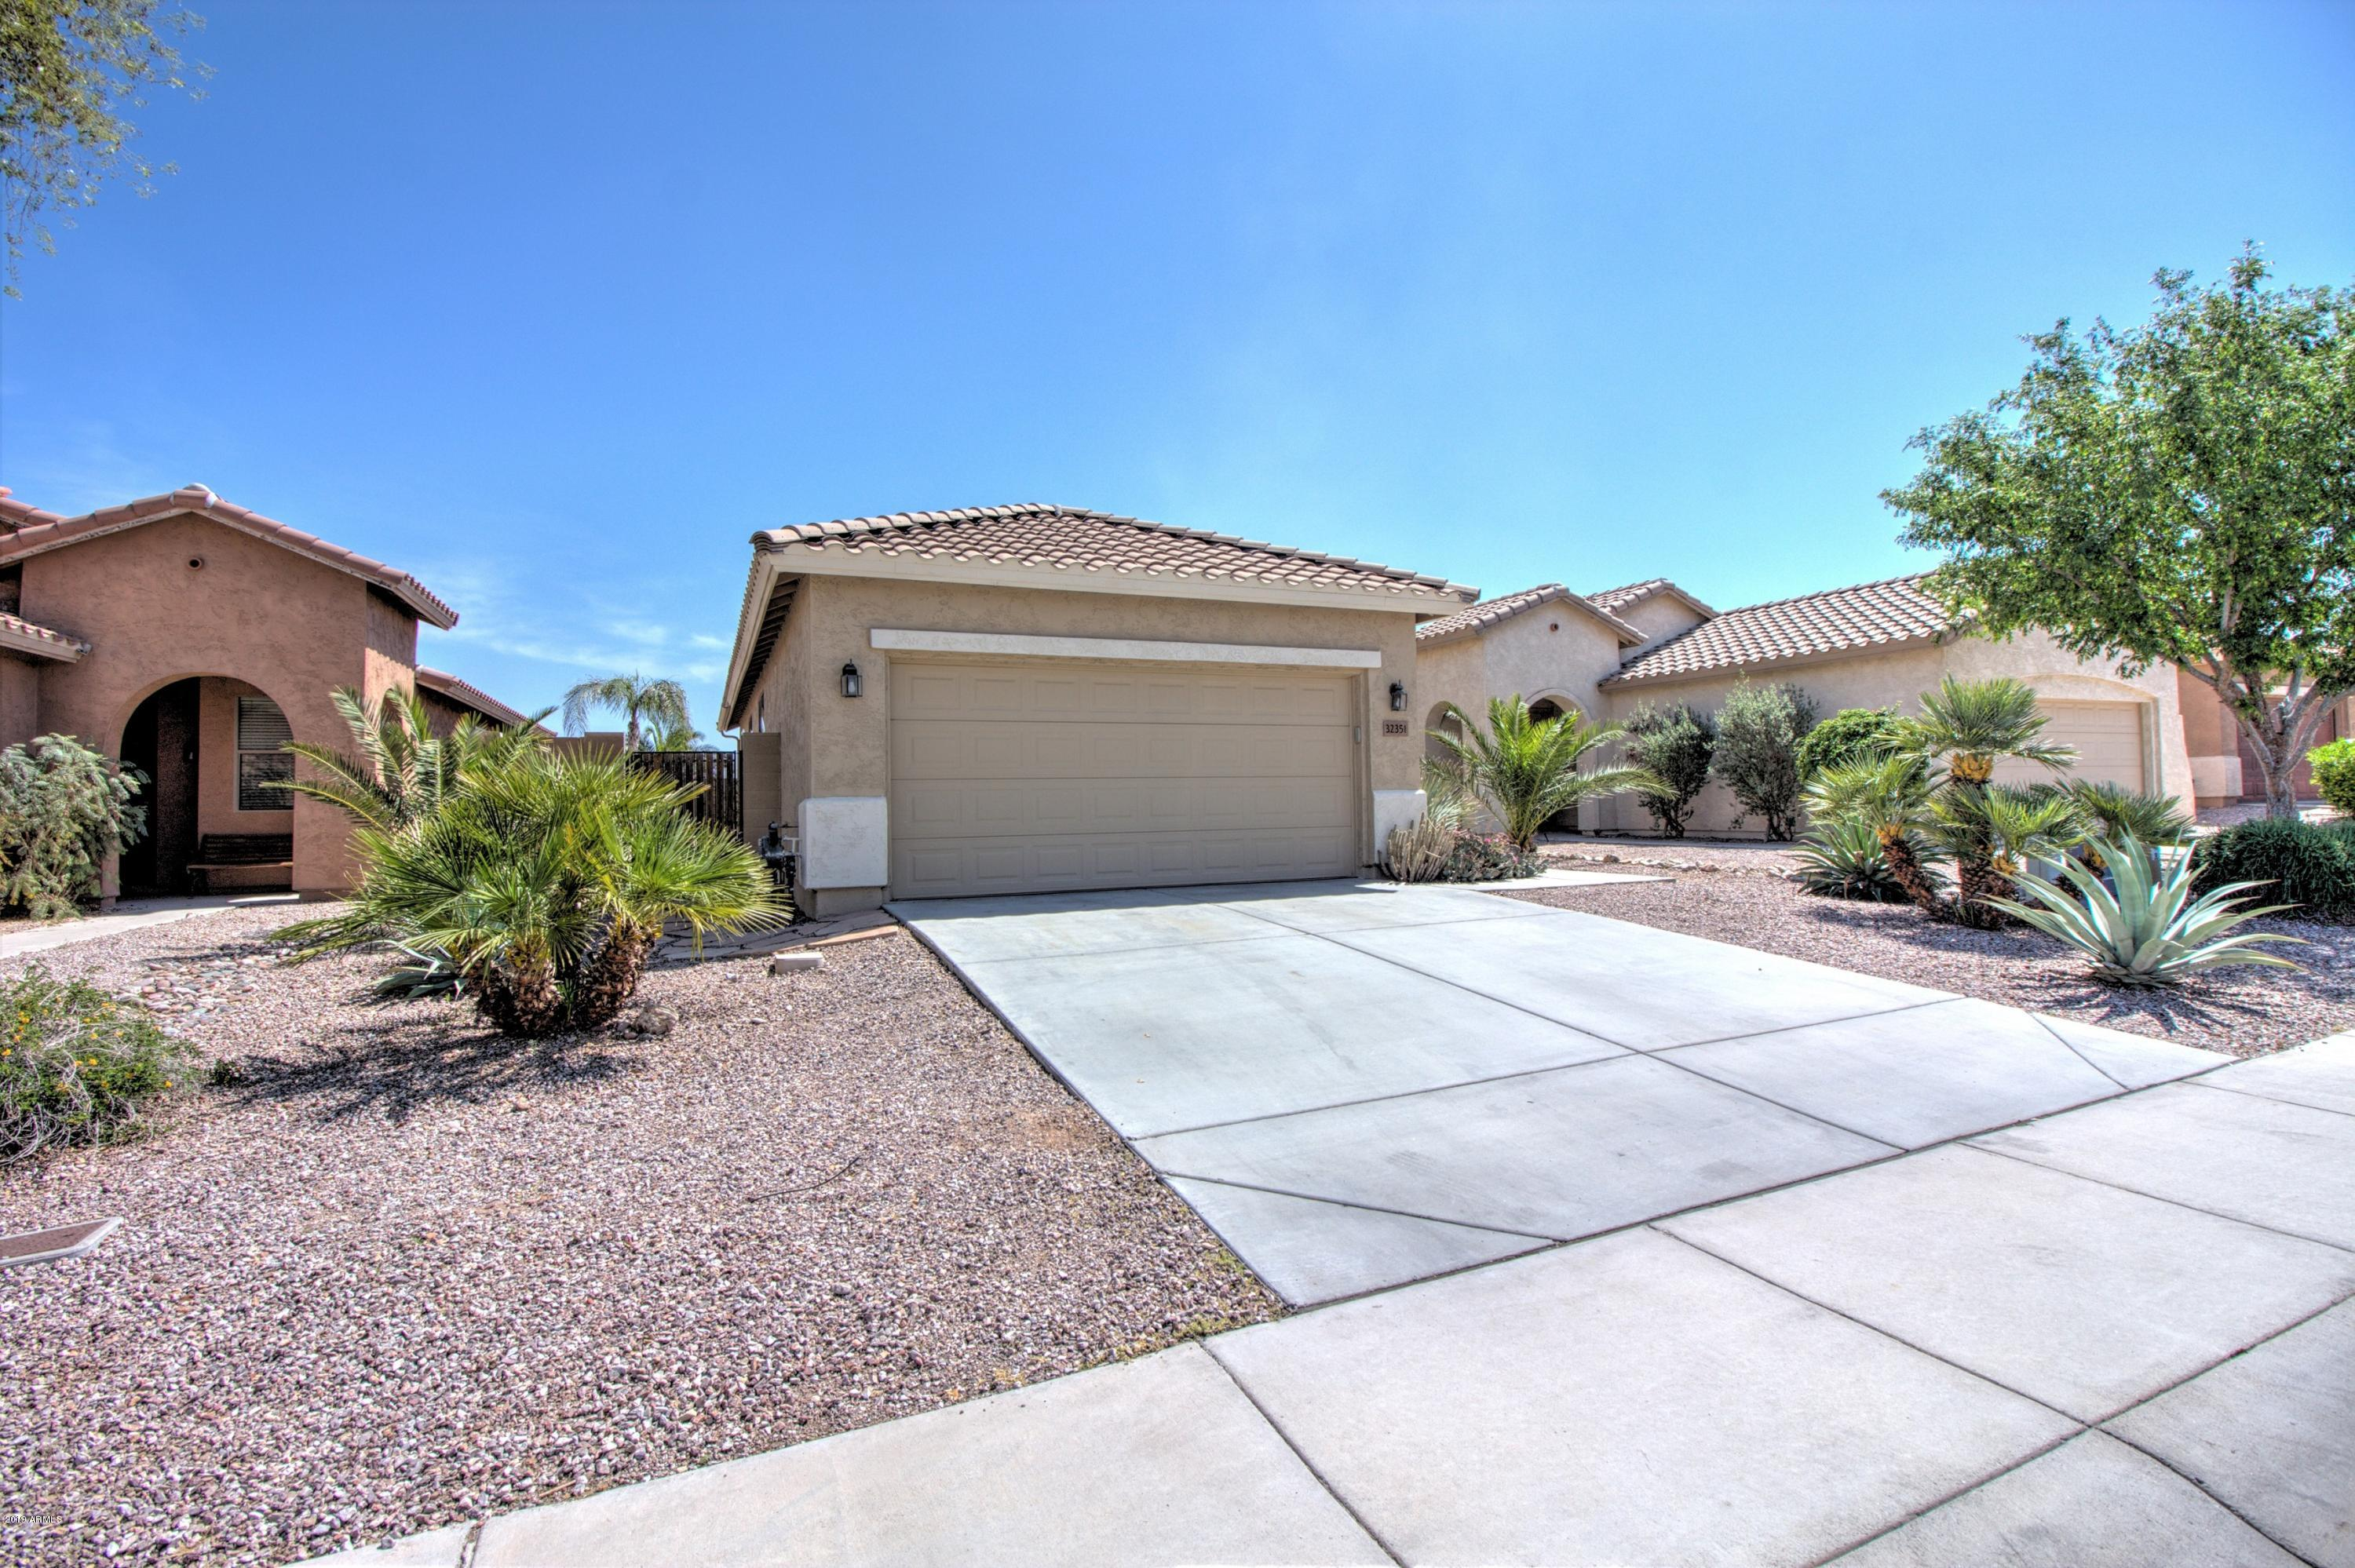 Garage Door Repair Queen Creek Az 3 Bed 2 Bath Pool East Valley Under 310k